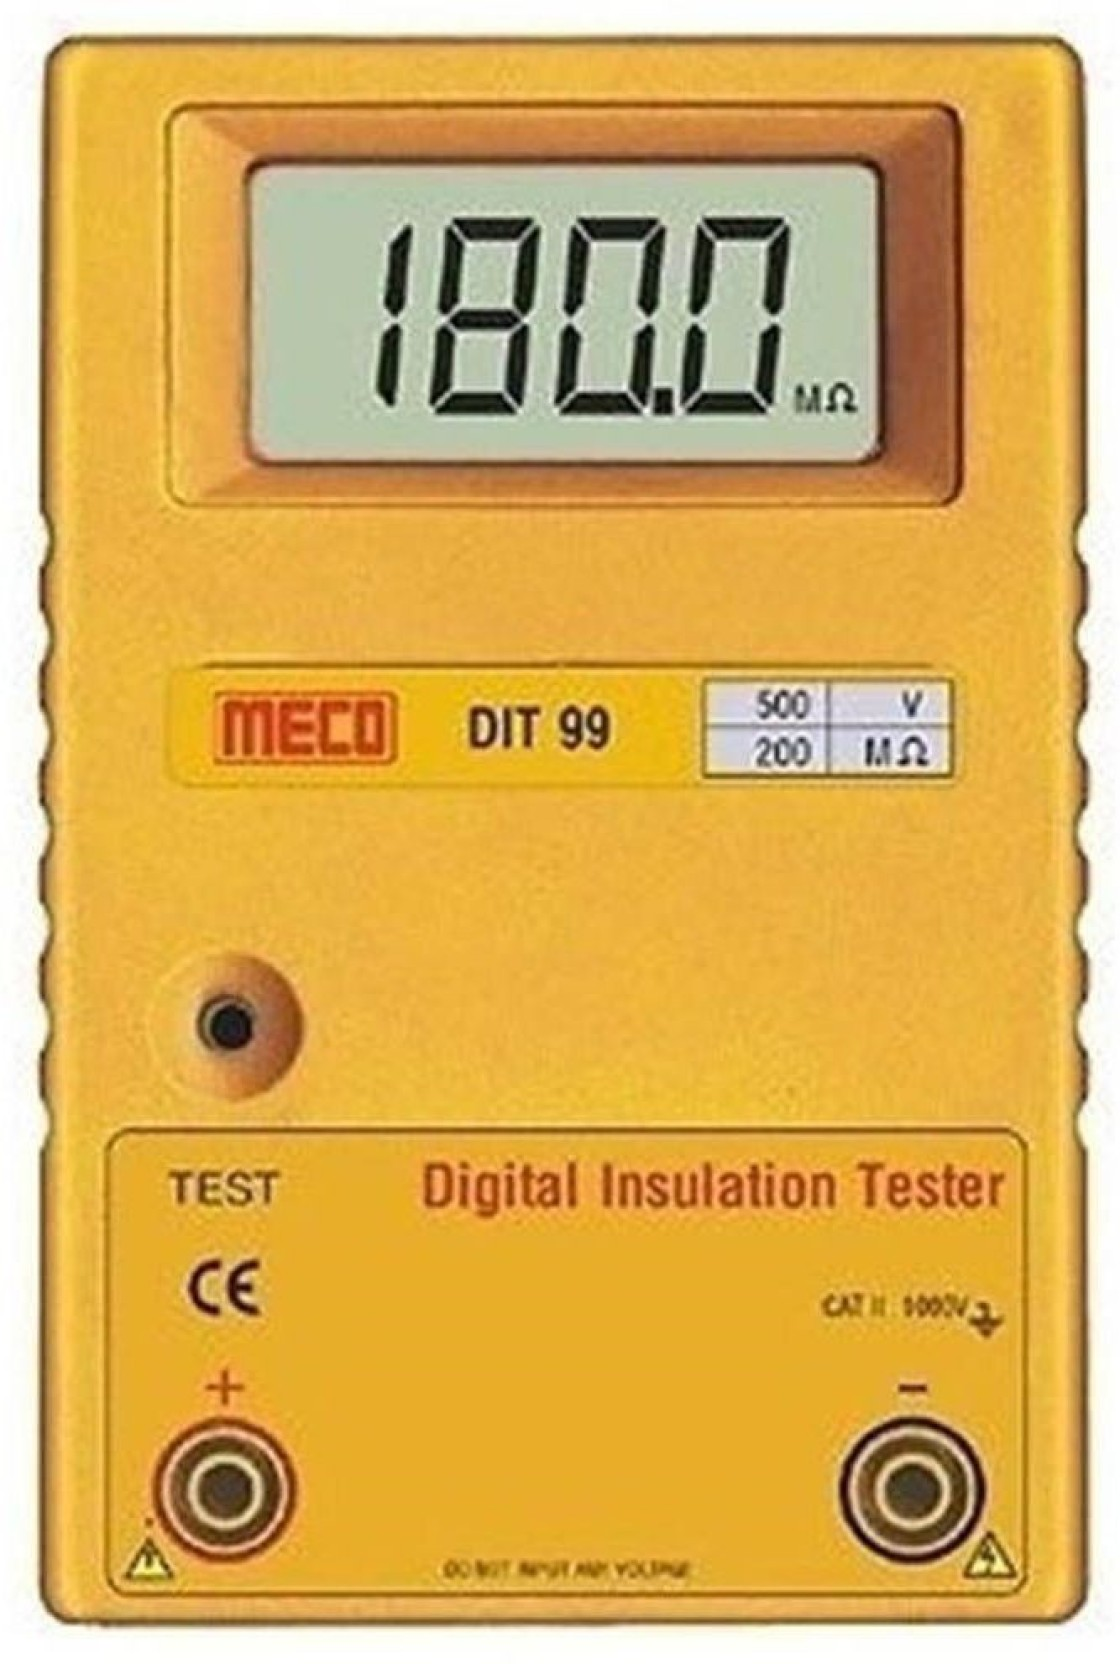 Meco Dit 99c Insulation Tester Alongwith Calibration Certificate Com Buy Ac90 1000v Induction Type Ac Circuit Detector Voltage Add To Cart Now